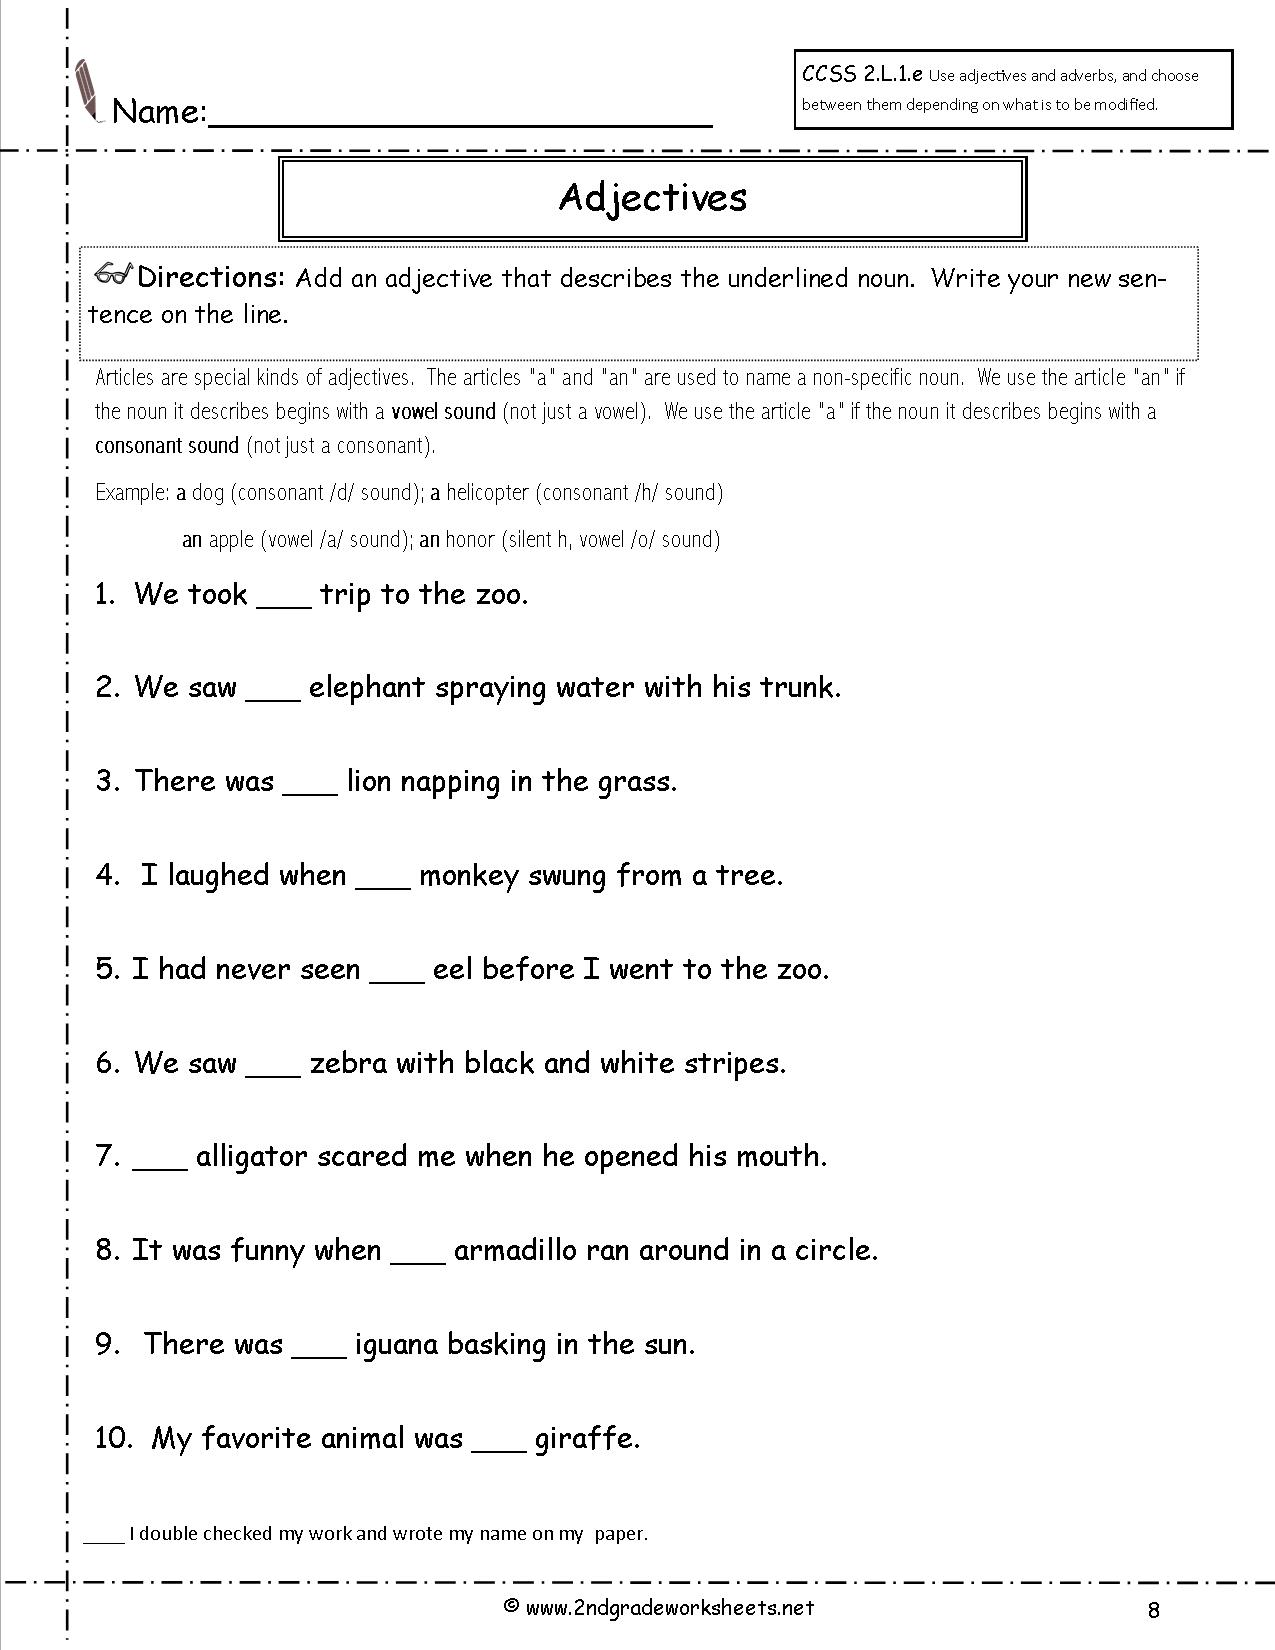 Worksheets 2nd Grade Ela Worksheets second grade esl test worksheets english 2 free using adjectives worksheets